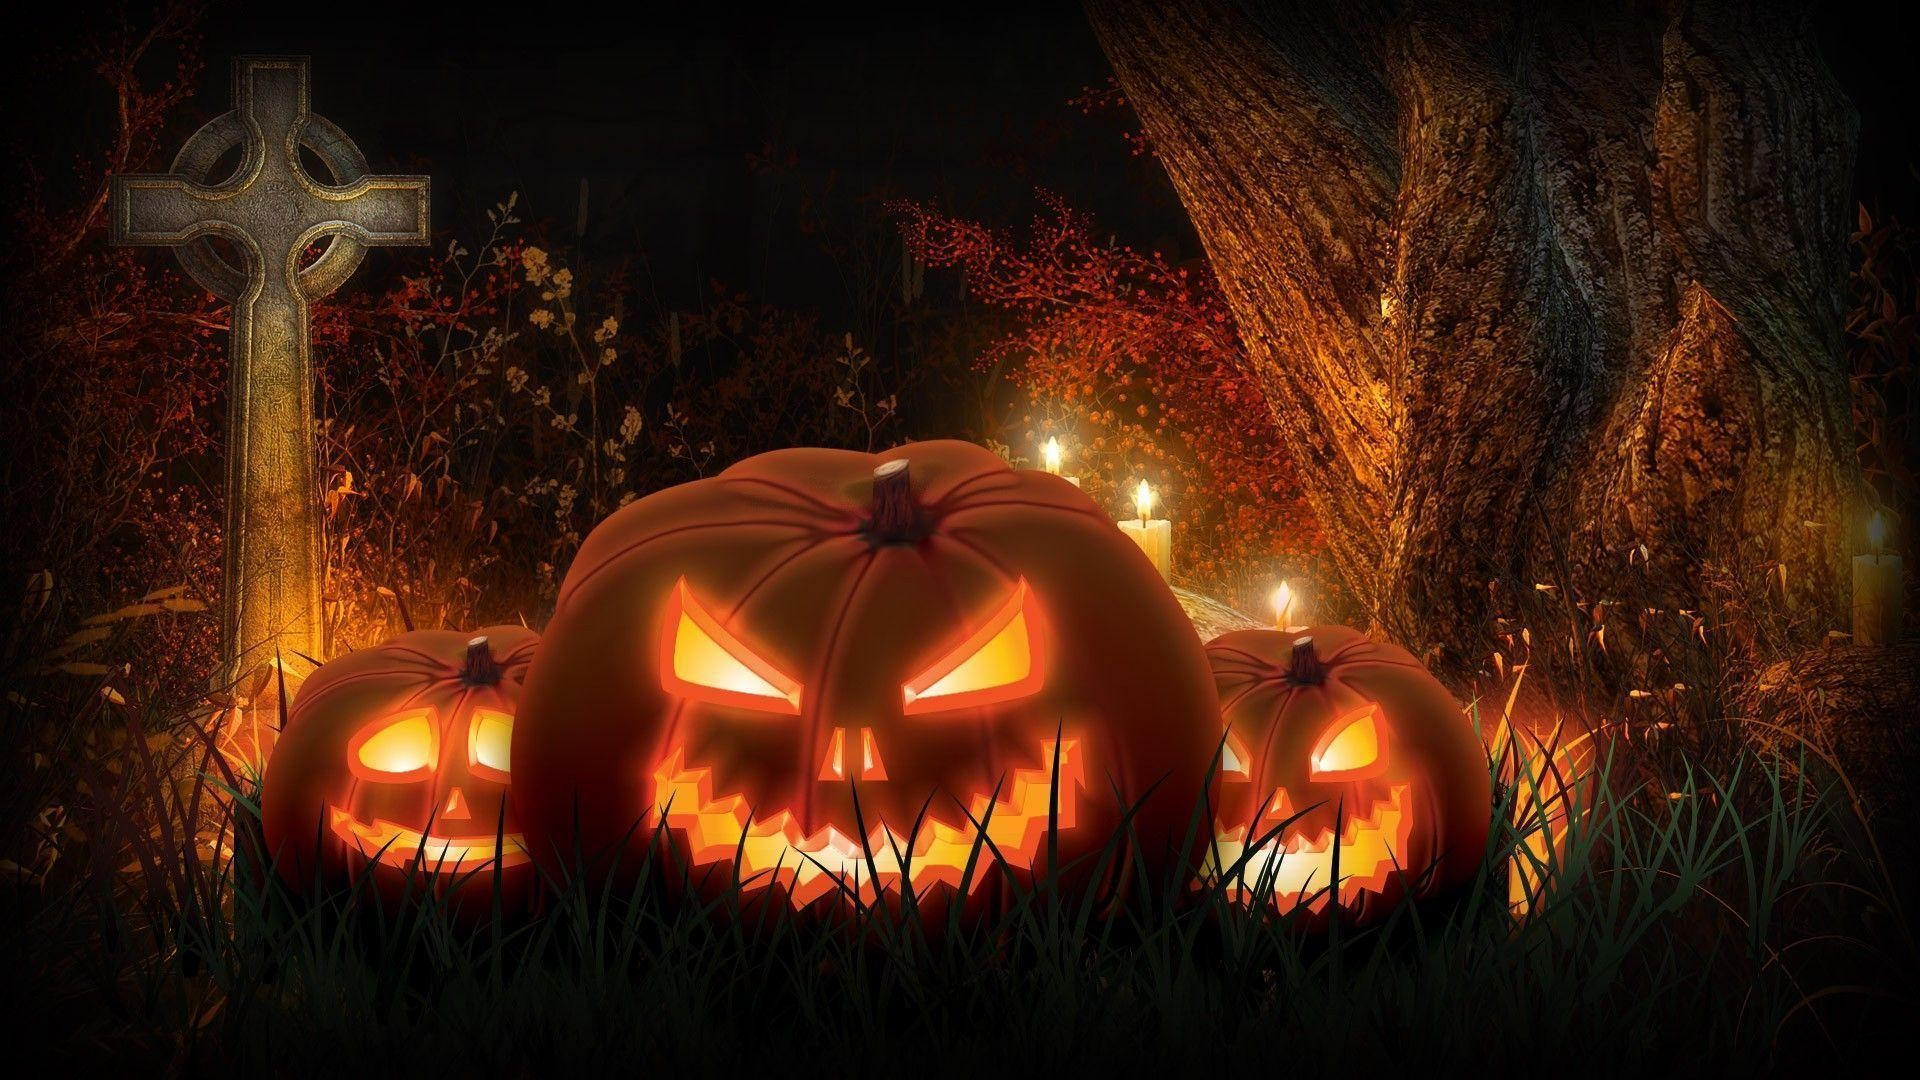 Scary Halloween Pumpkin Wallpaper 1080p Halloween Jack O